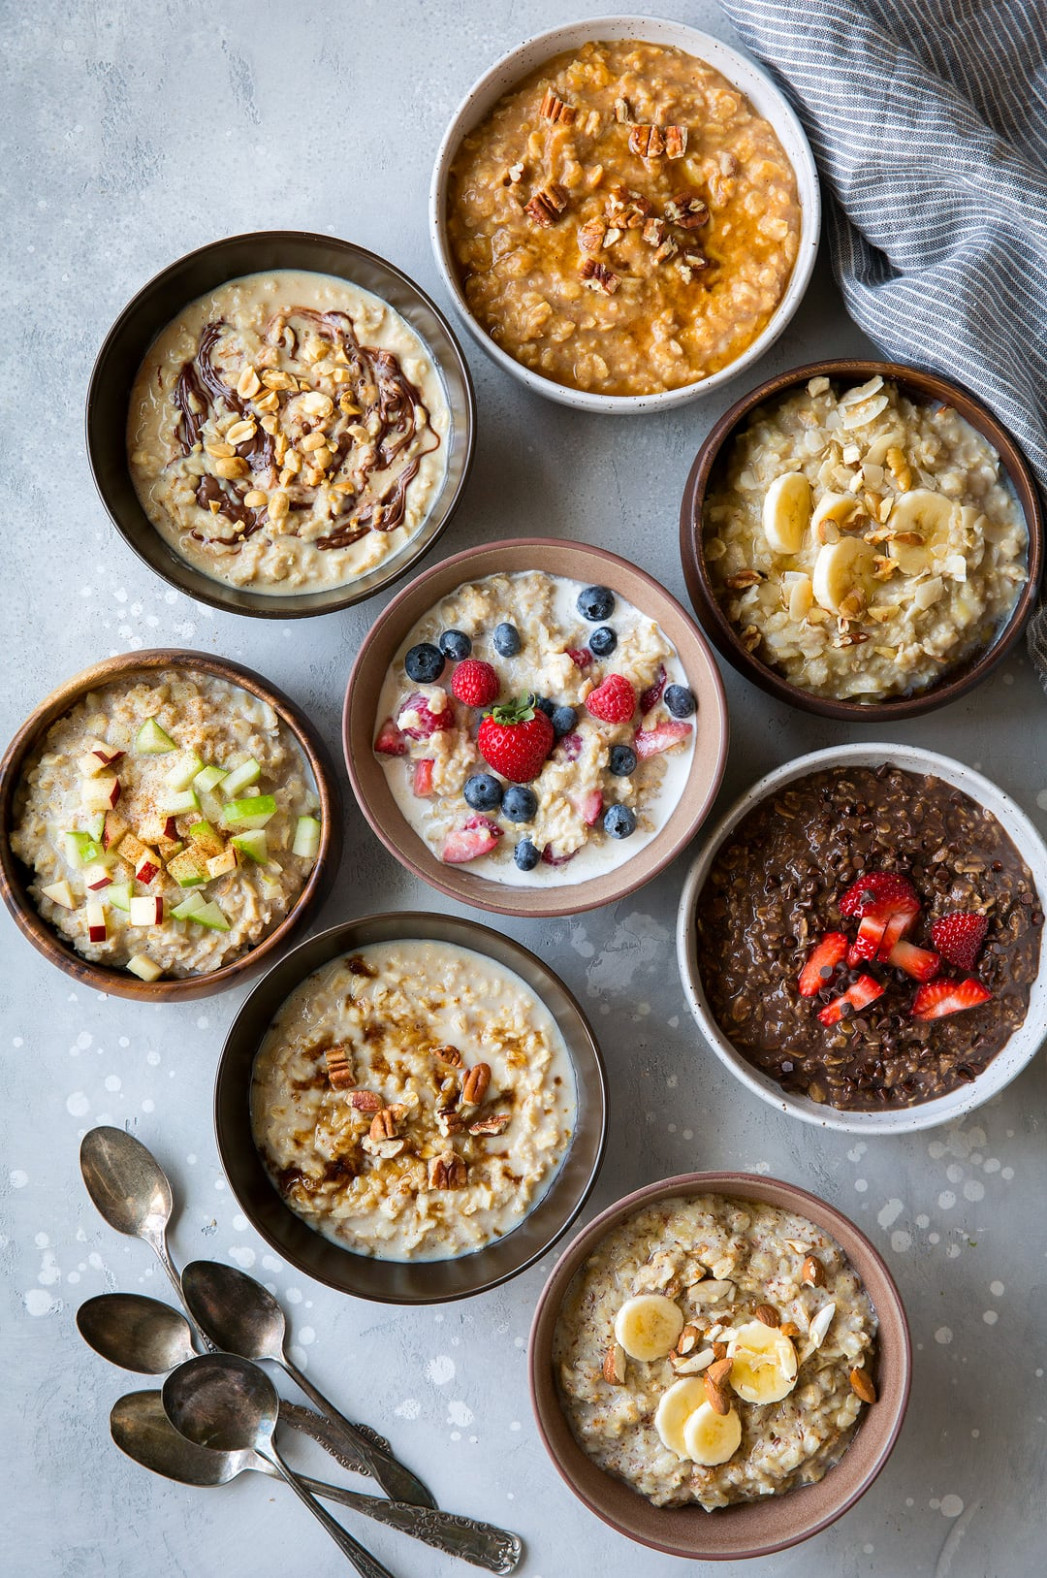 Oatmeal - How To Cook It 8 Delicious Ways! - Cooking Classy - Recipes Using Oats Healthy